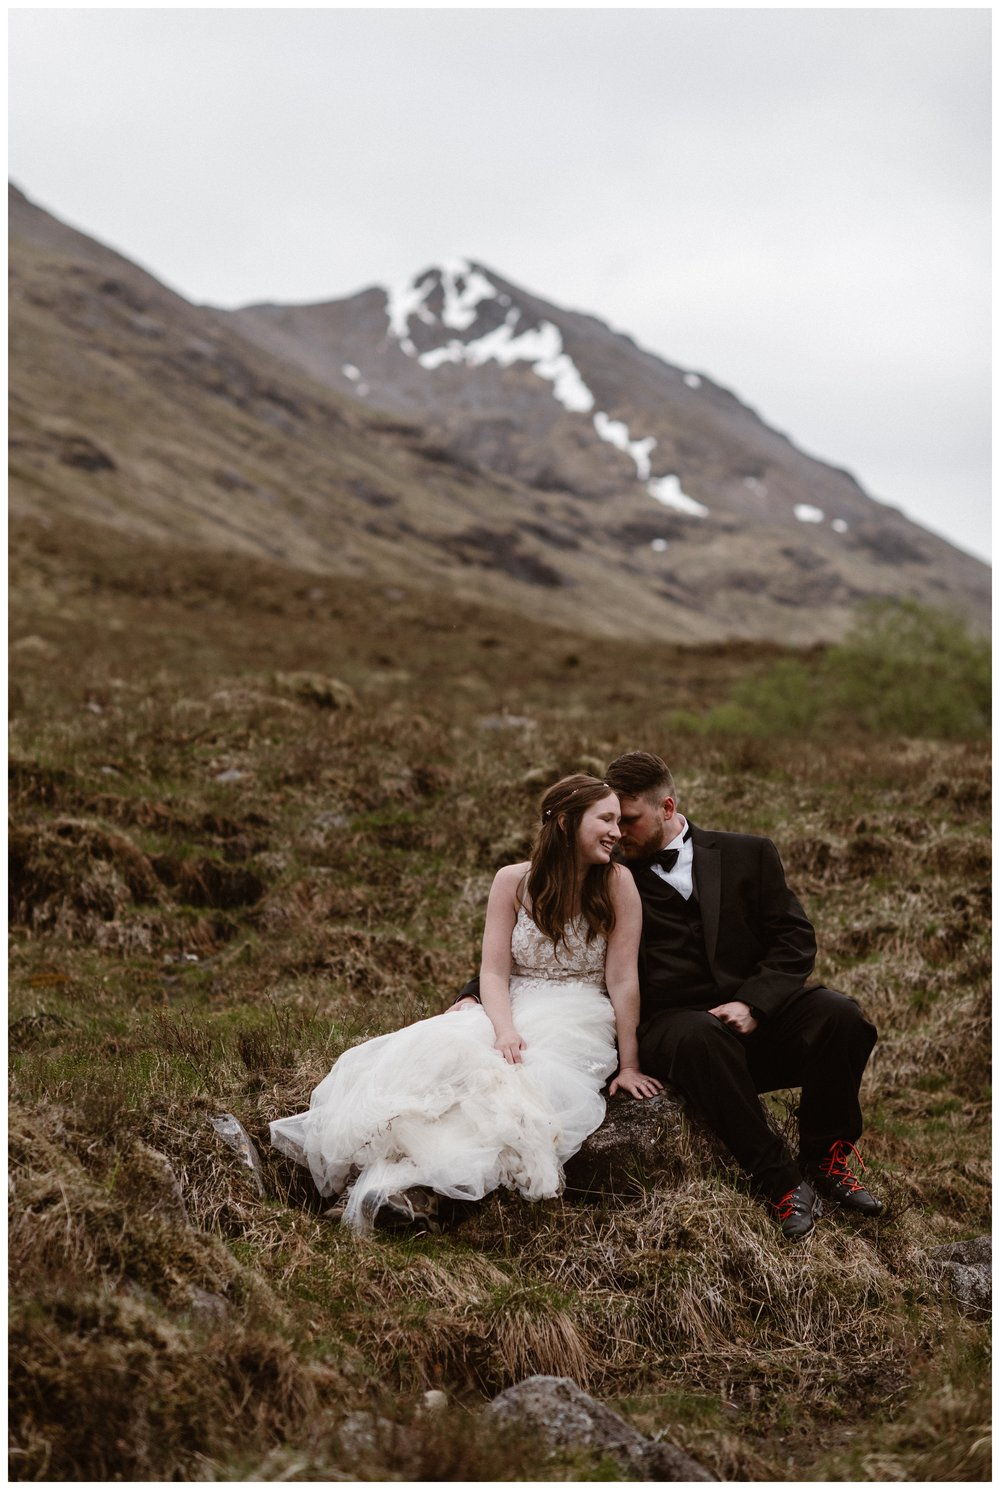 Elissa and Daniel sit in the marsh of the Scottish Highlands following their self solemnizing elopement ceremony where the only witnesses were me as their photographer and a few ptarmigans. Photo by Maddie Mae, Adventure Instead.